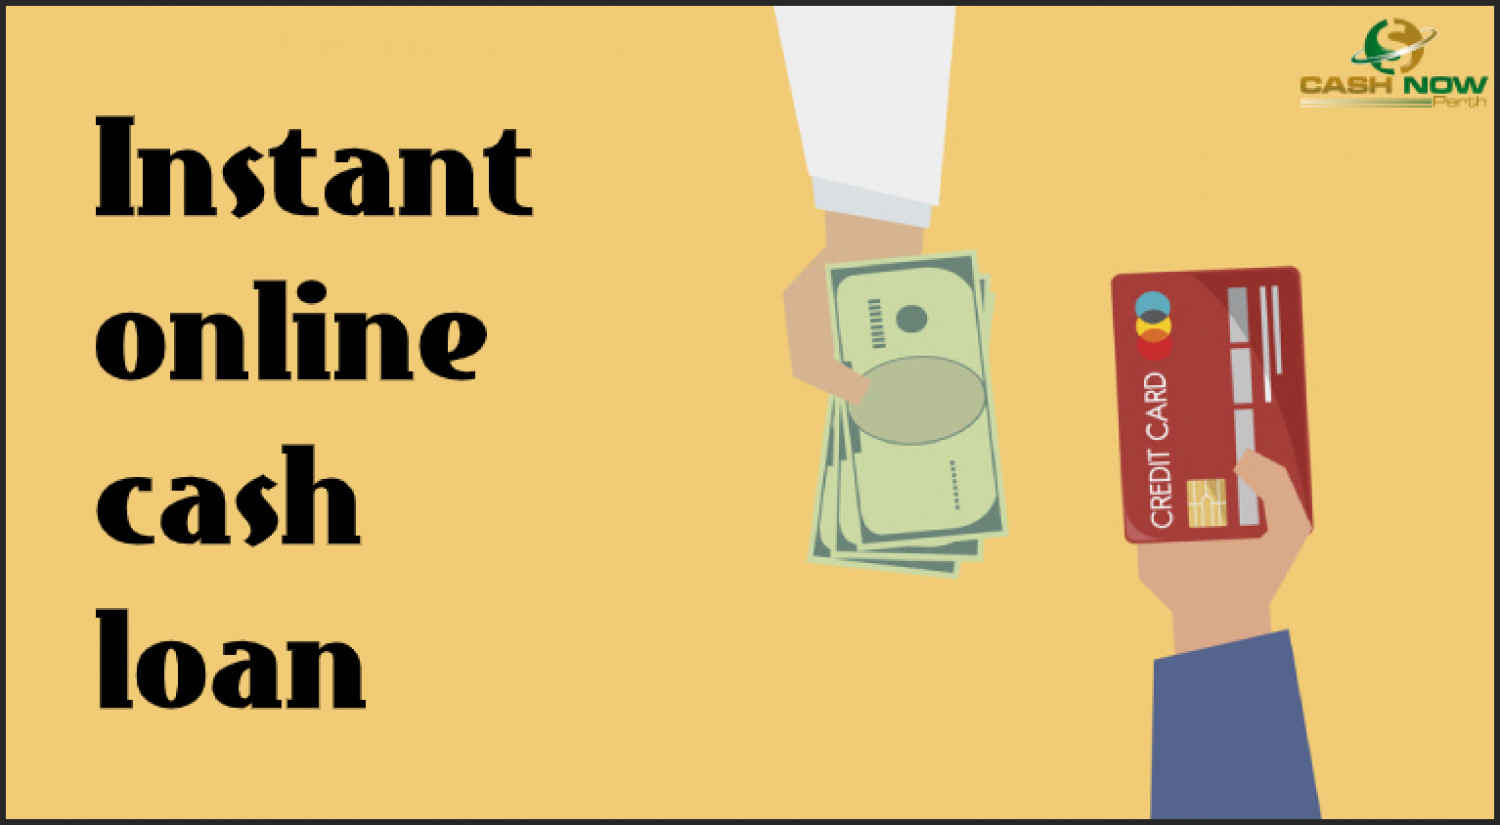 Meet Your Short Term Needs with instant online cash loan Infographic